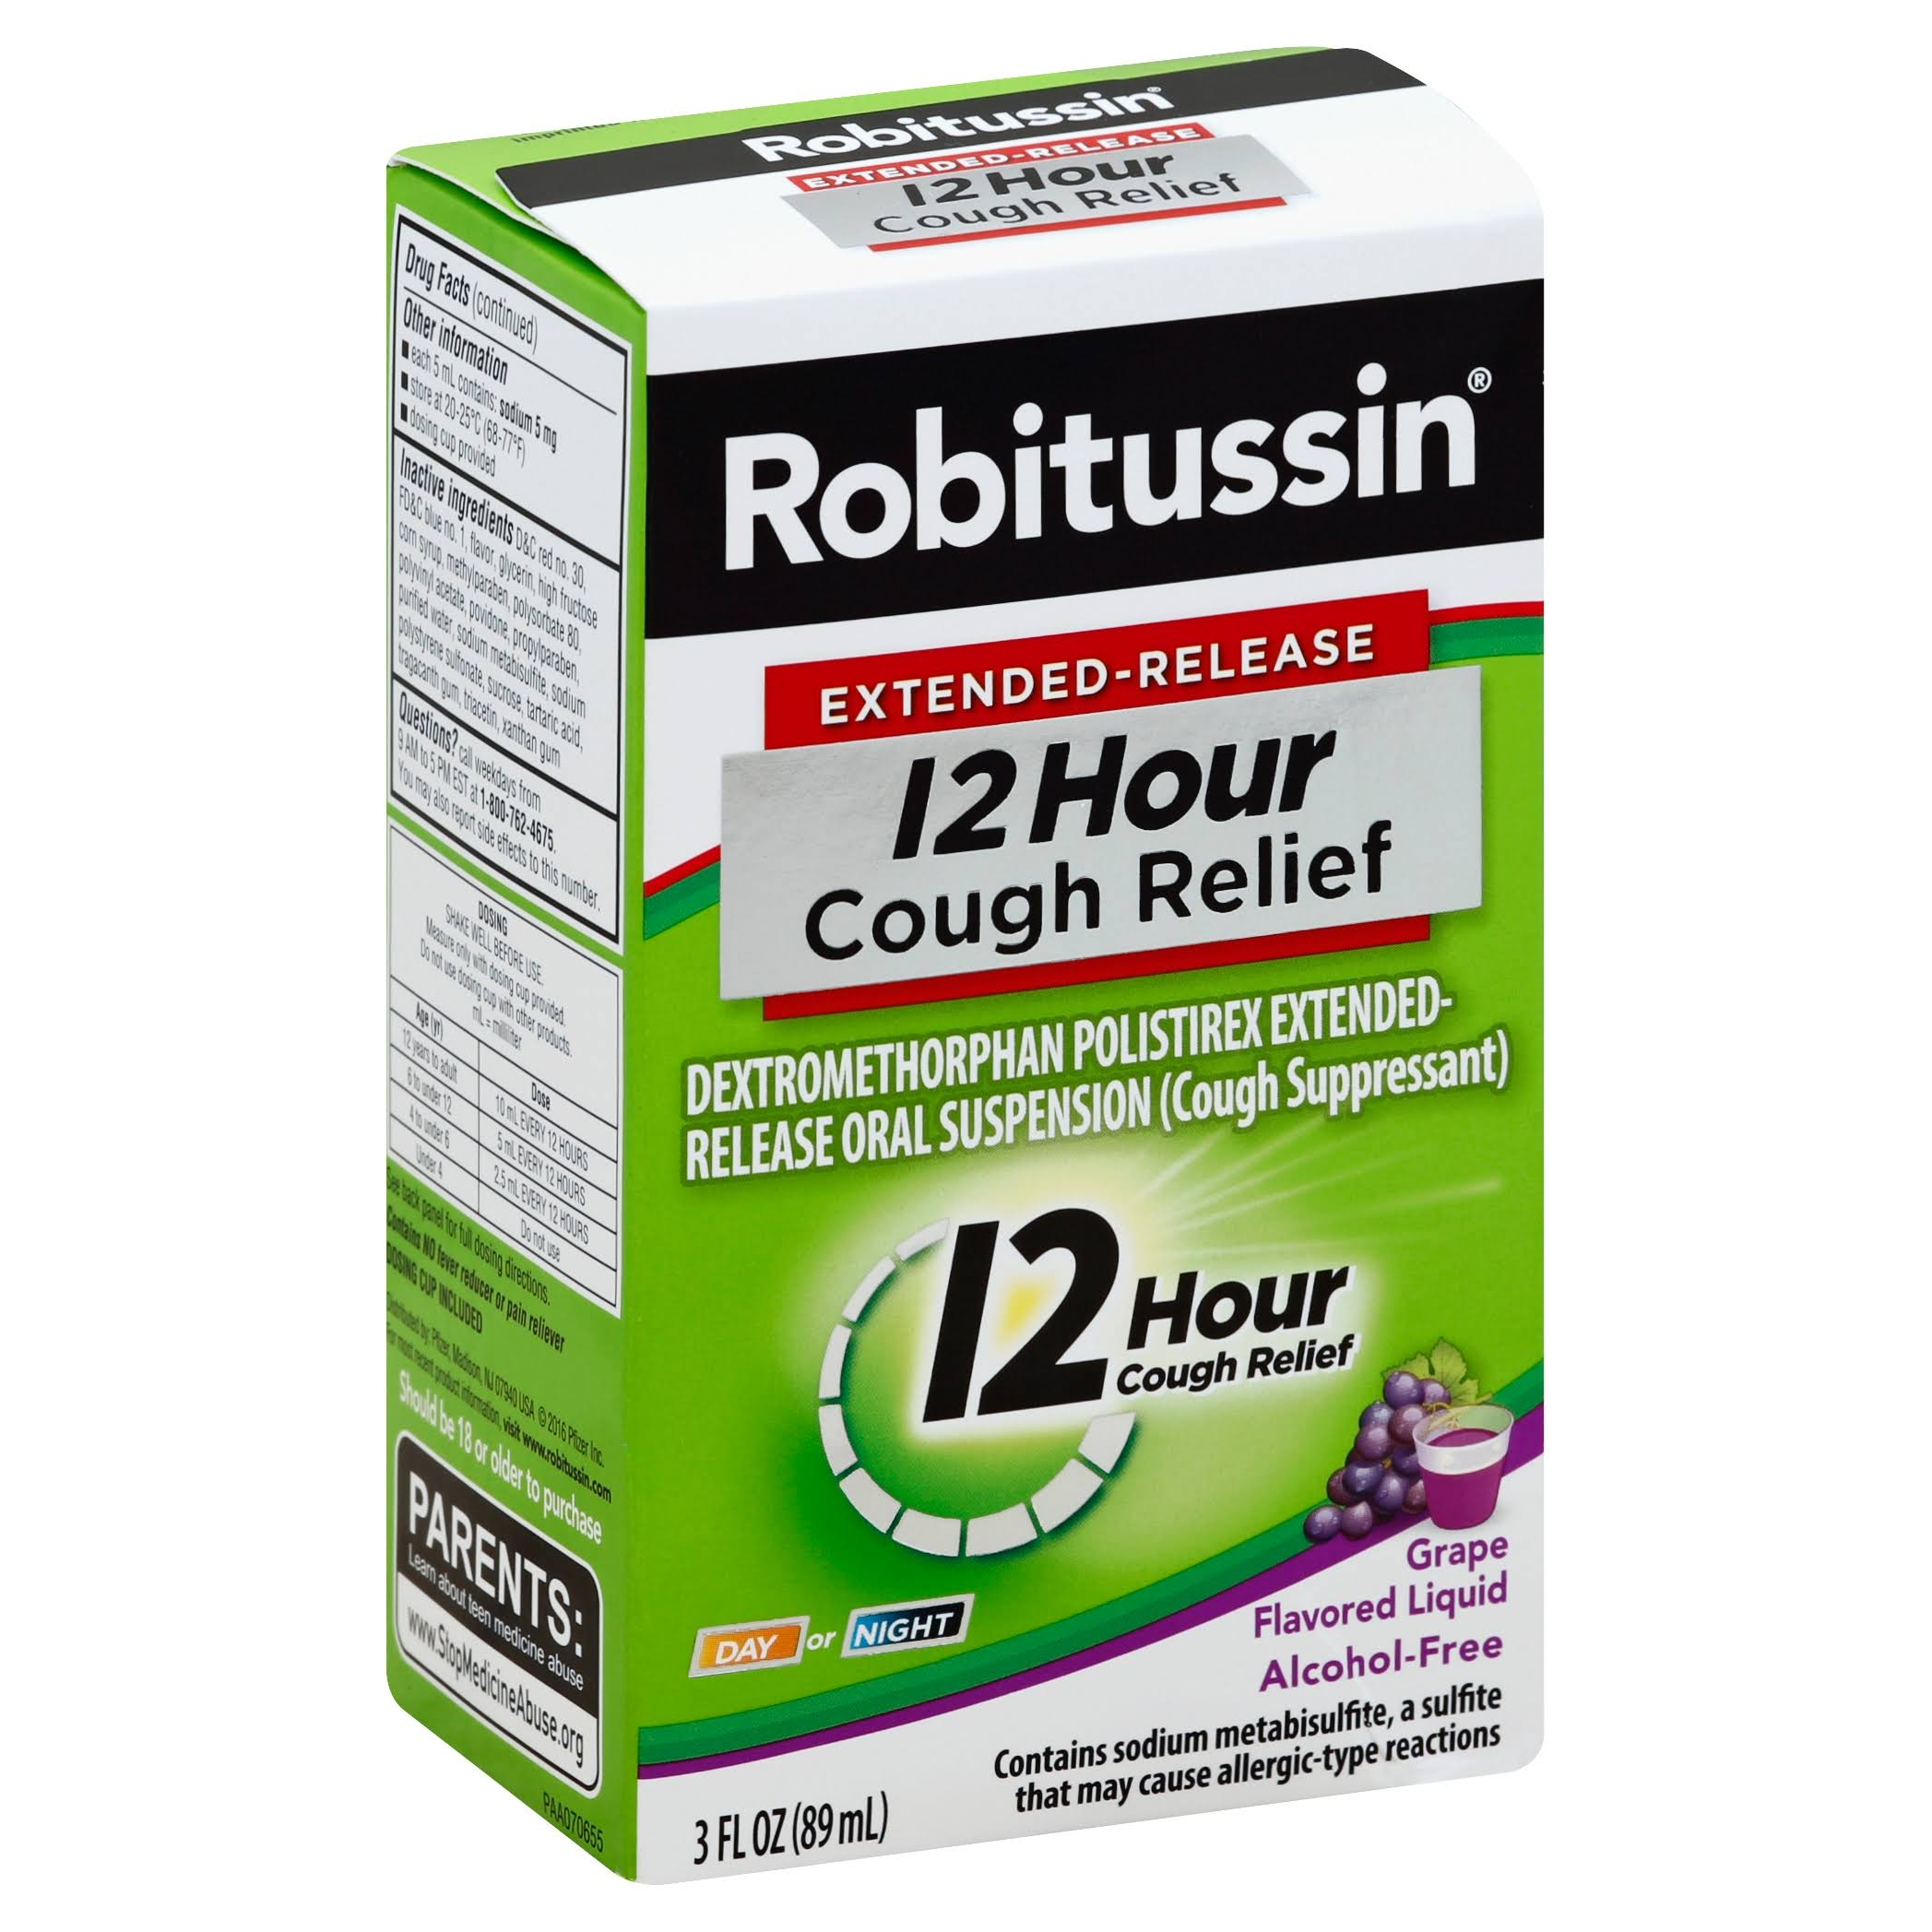 Robitussin Extended-Release 12 Hour Cough Relief - Grape, 3oz